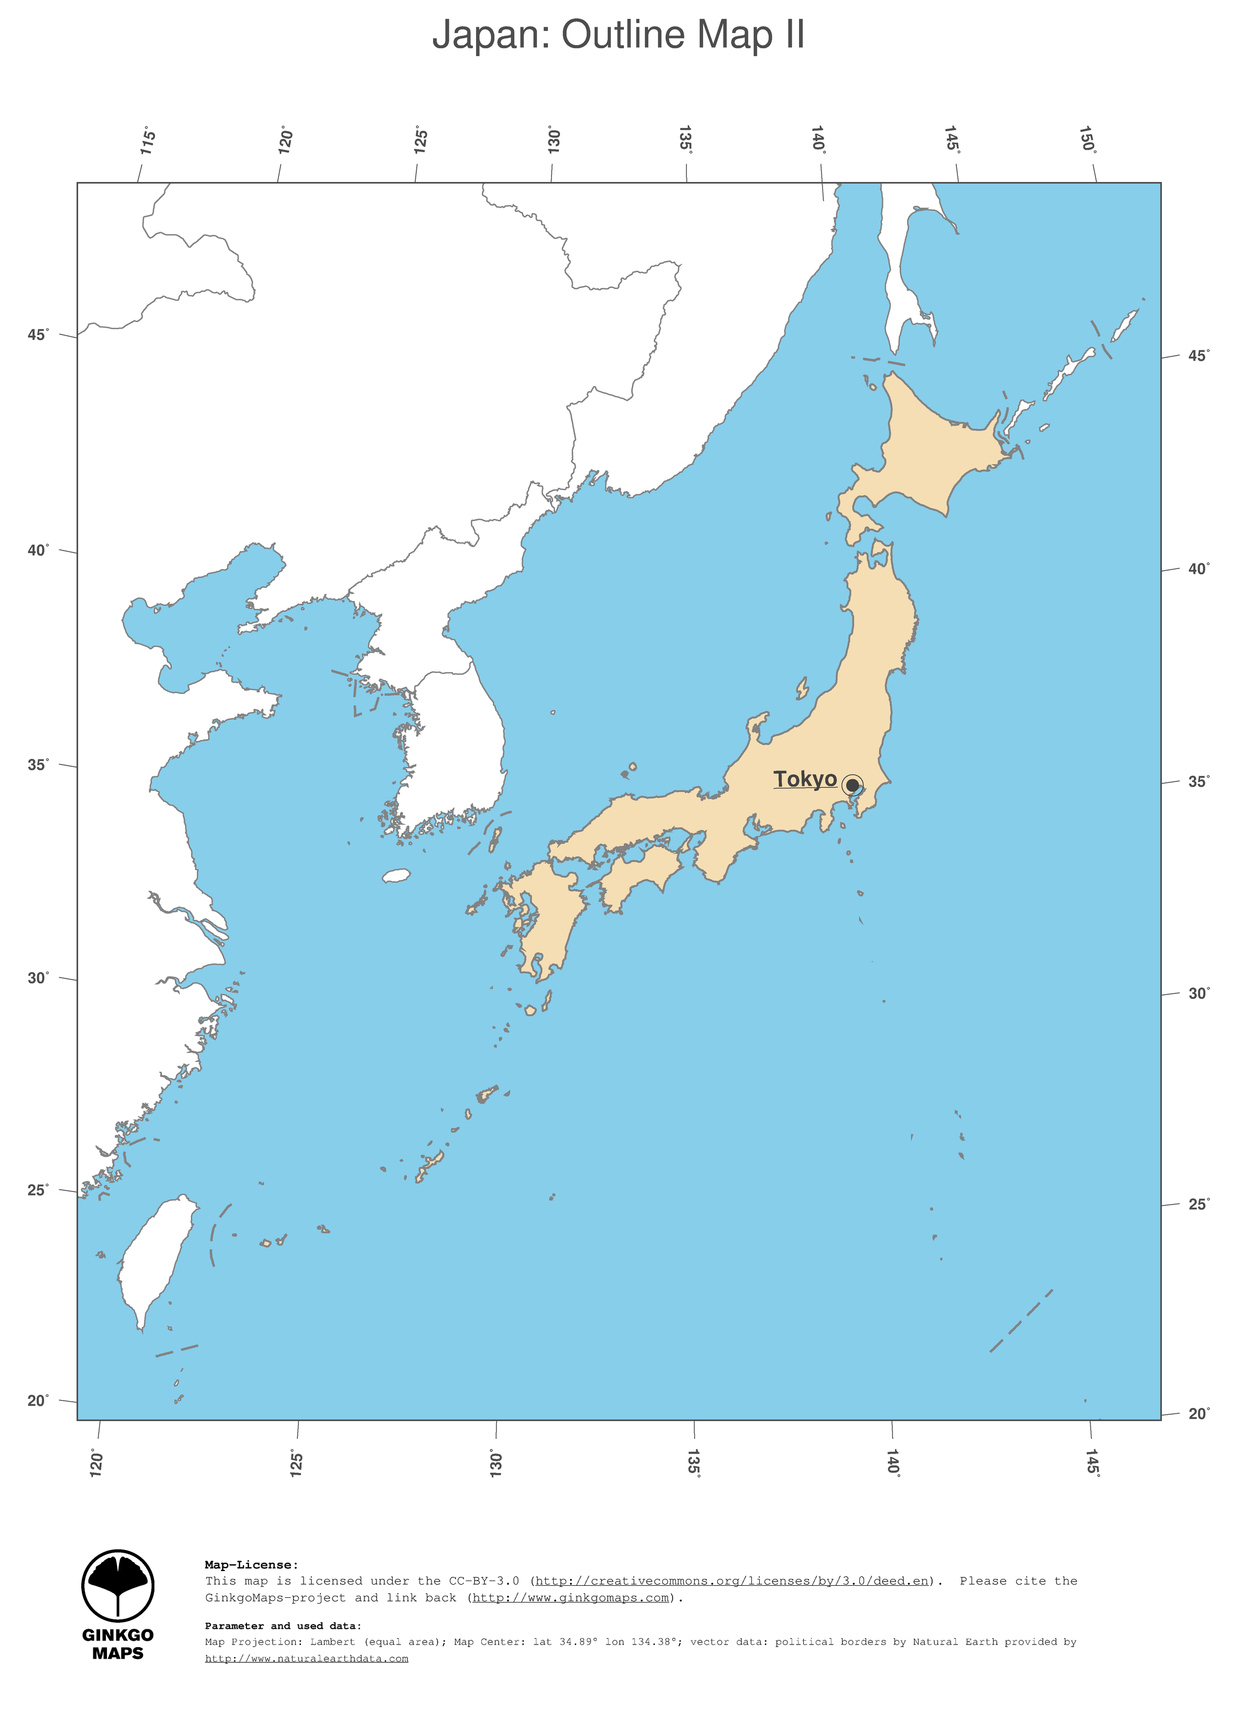 Map japan ginkgomaps continent asia region japan 2 map japan political country borders and capital outline map gumiabroncs Images